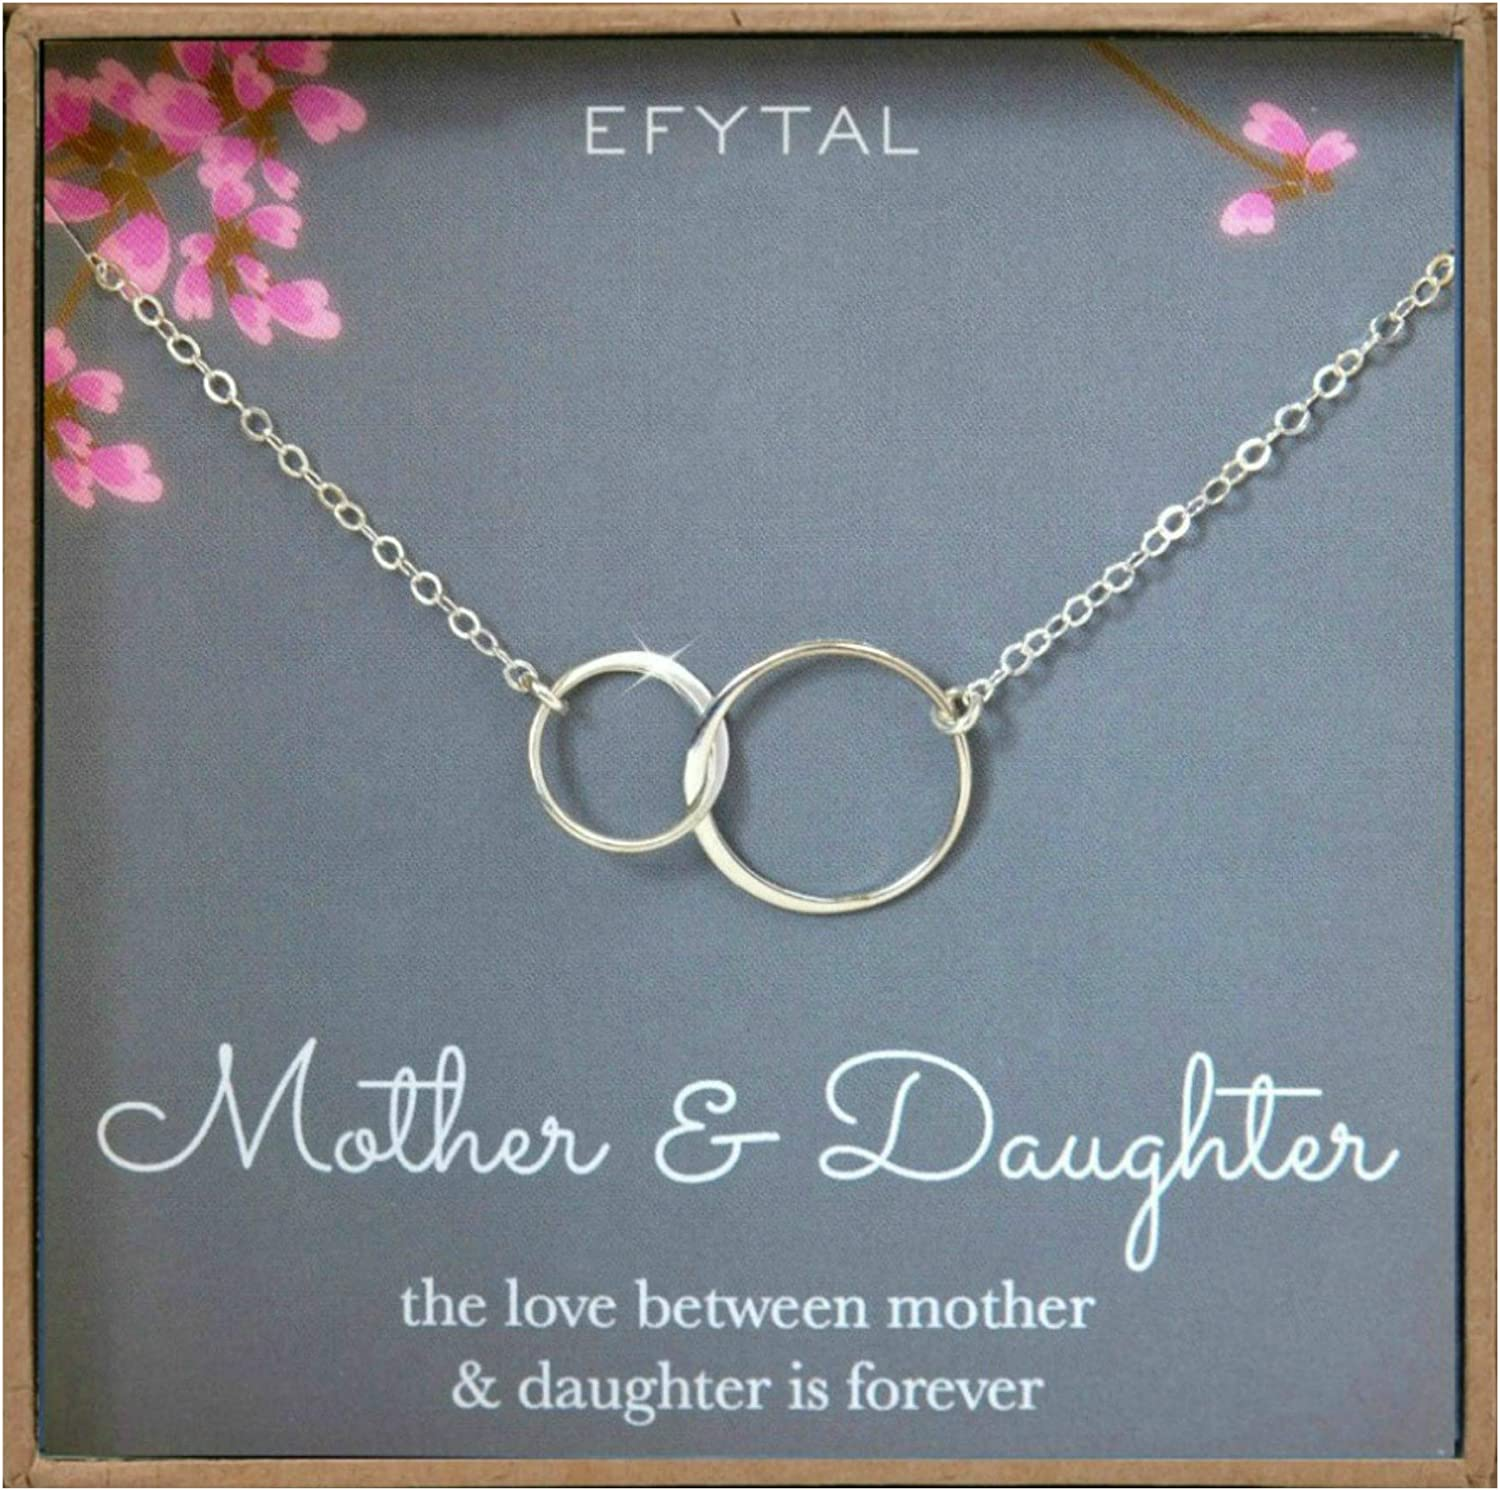 Amazon Com Efytal Mother Daughter Necklace Sterling Silver Two Interlocking Infinity Double Circles Mothers Day Jewelry Birthday Gift Clothing